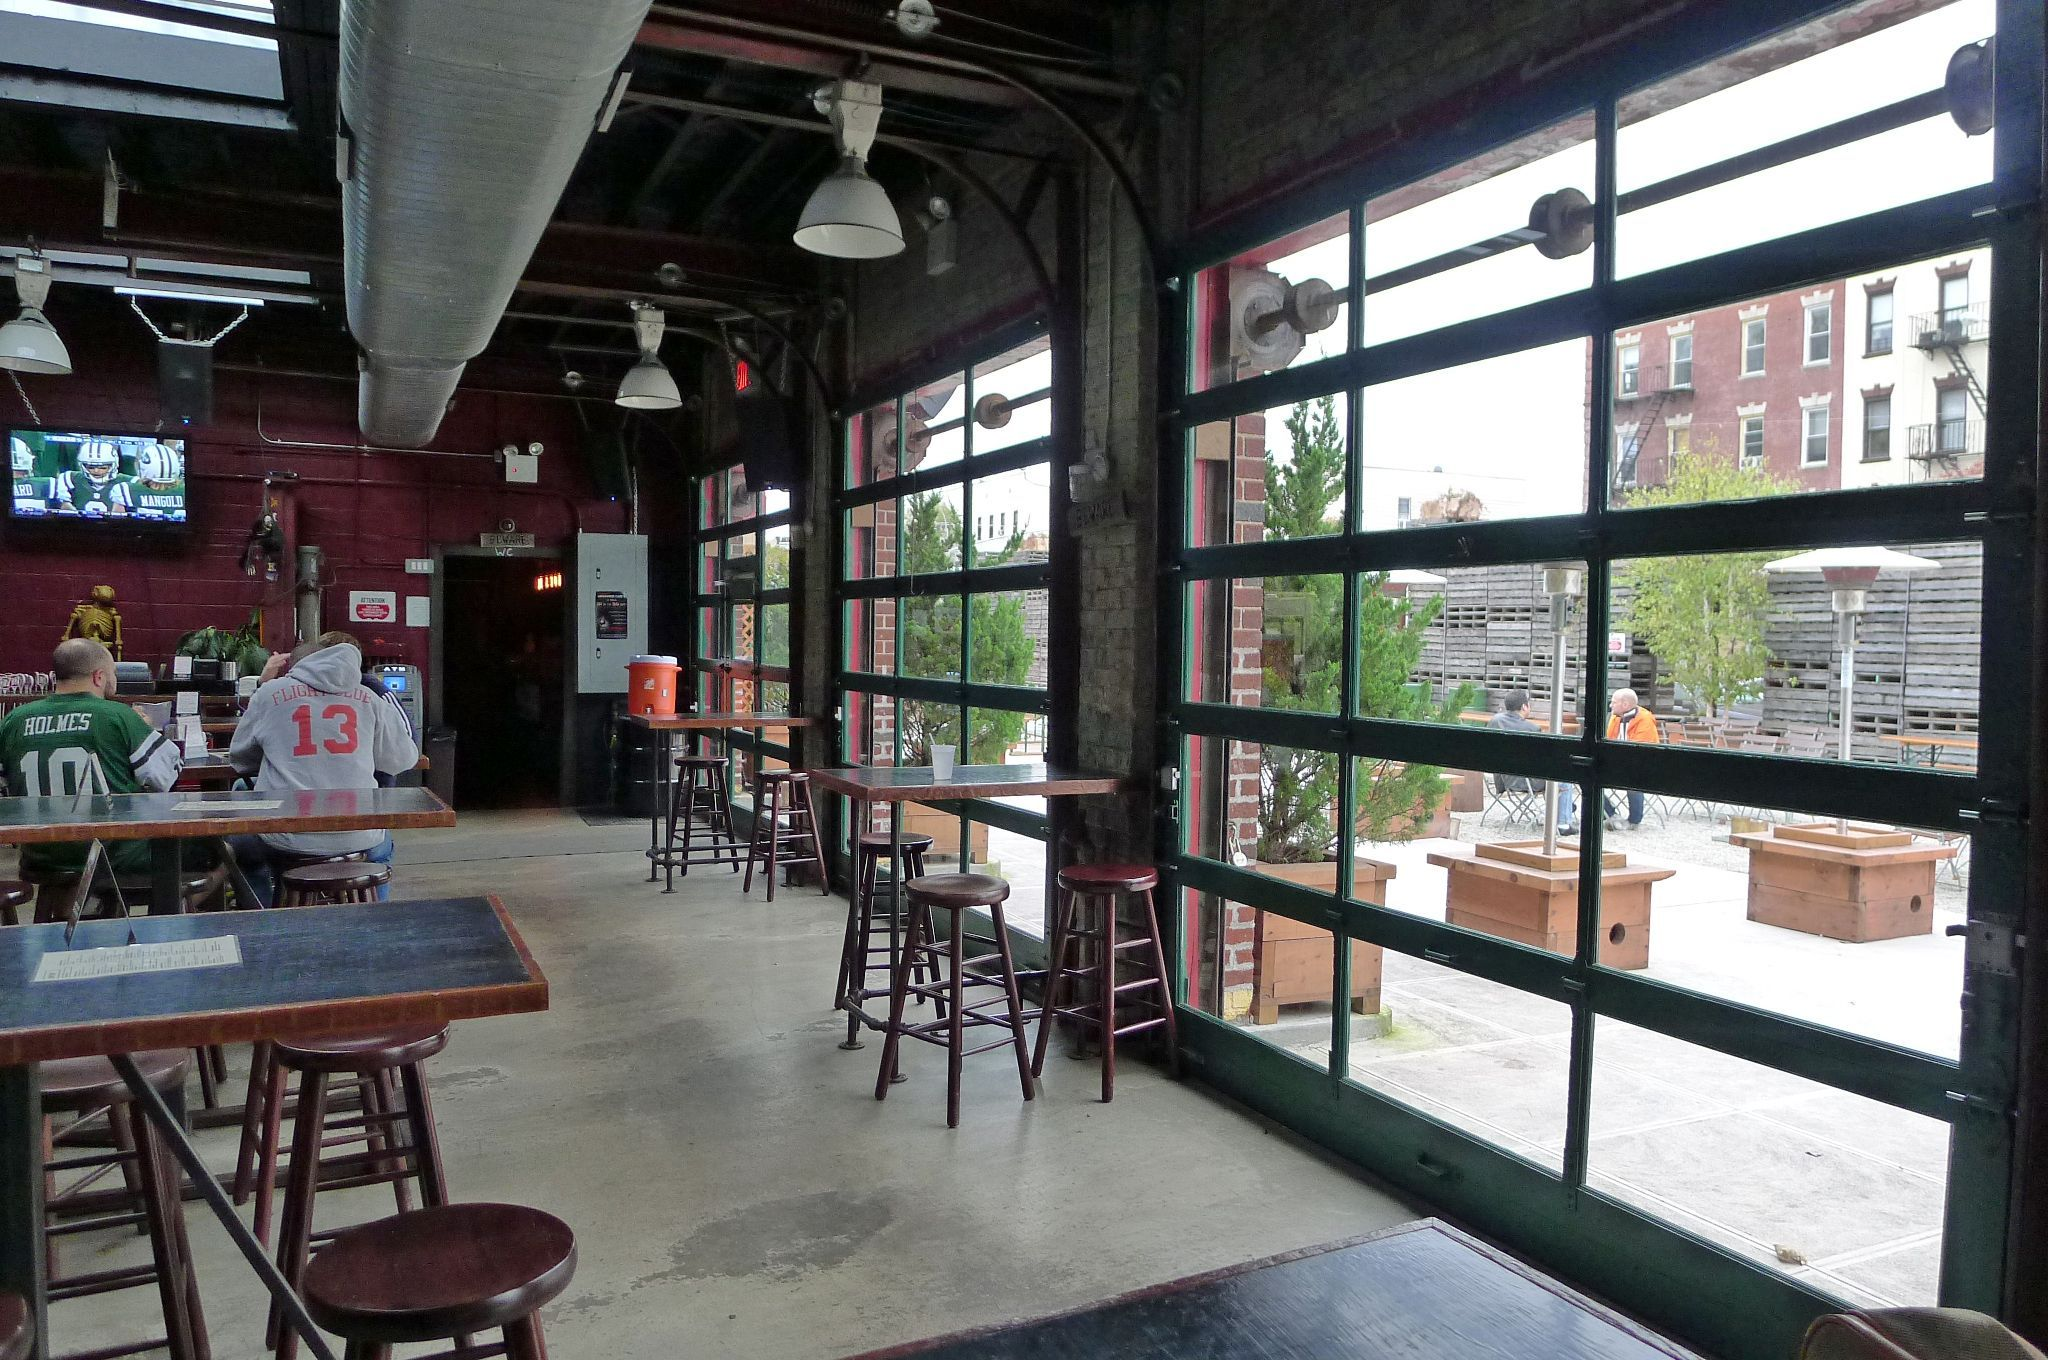 Nycs best patios rooftops and beer gardens eater ny robert - Places to eat near longwood gardens ...